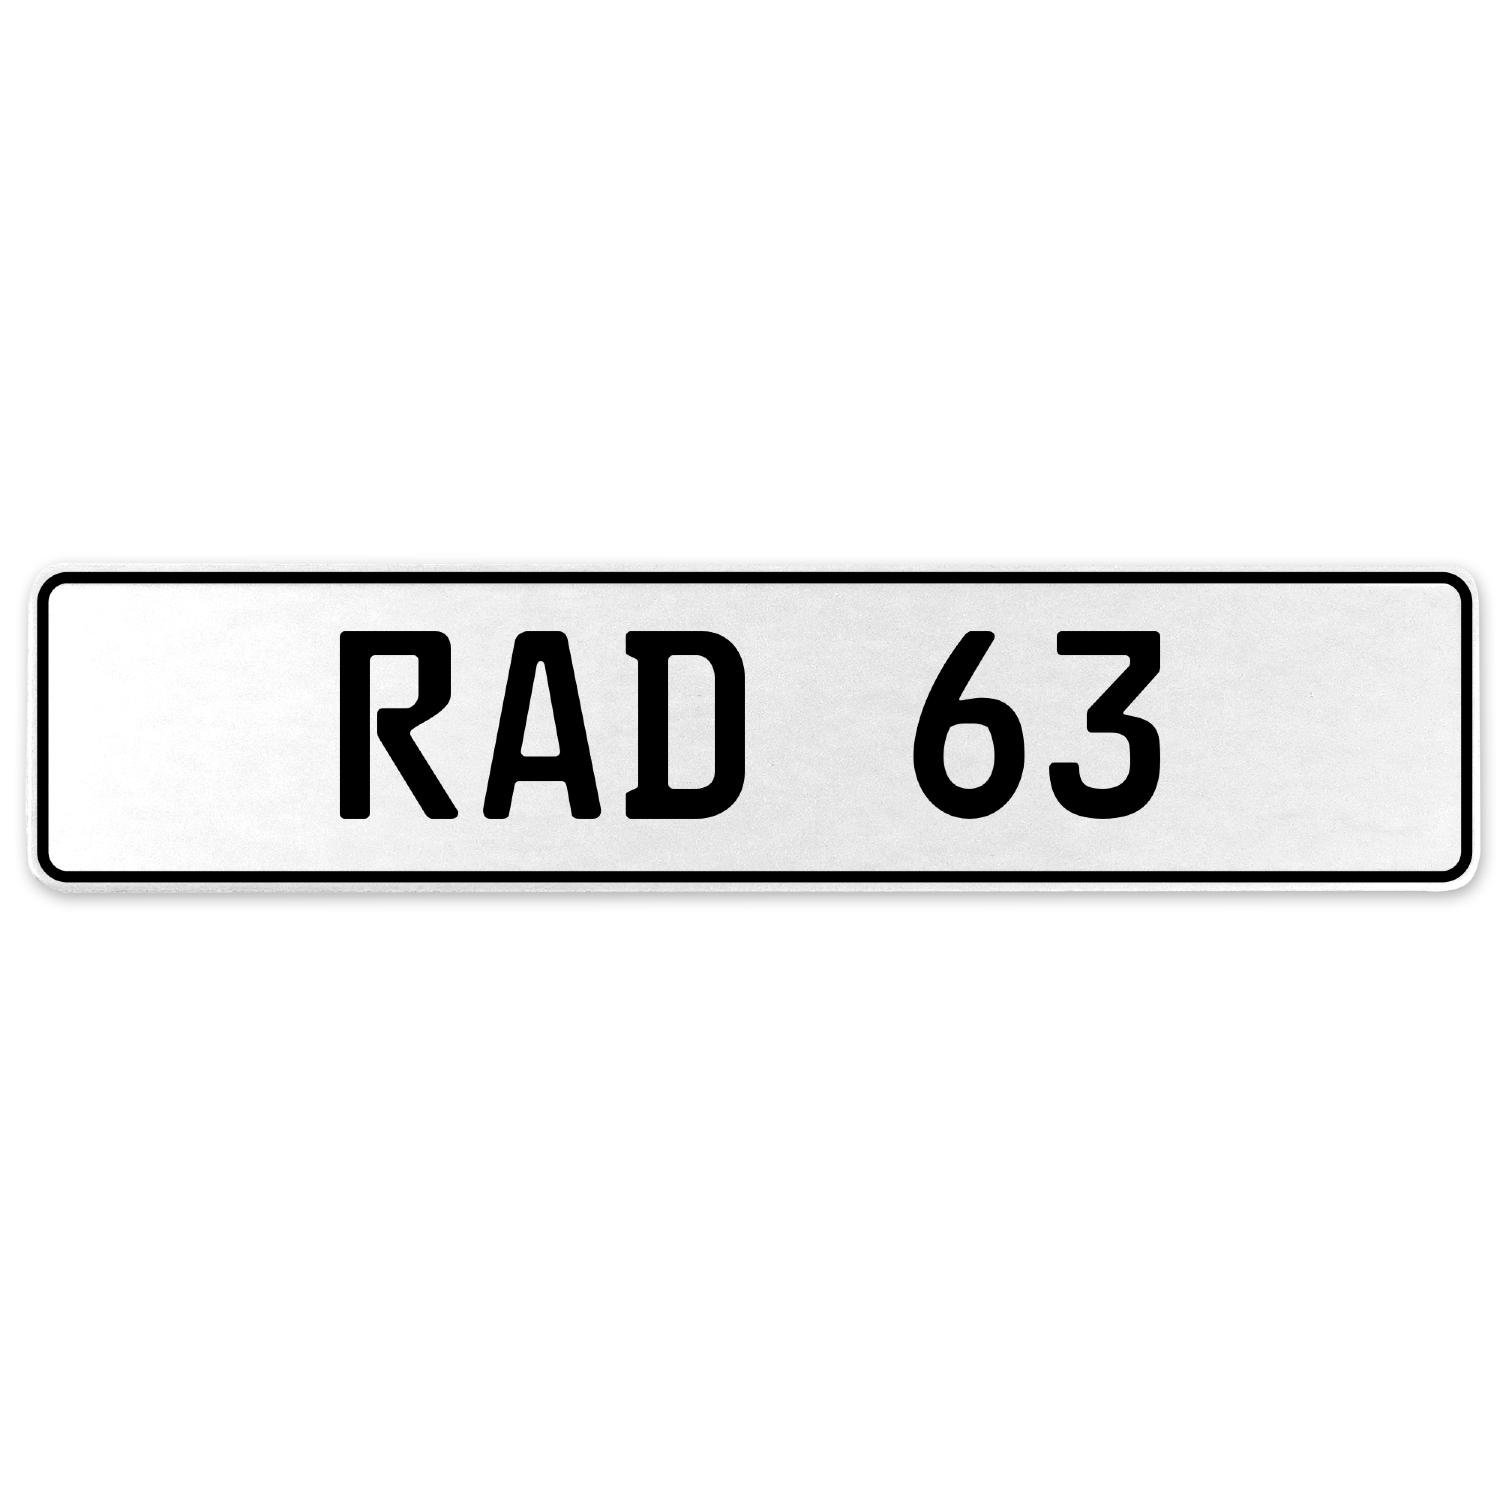 Vintage Parts 553967 RAD 63 White Stamped Aluminum European License Plate